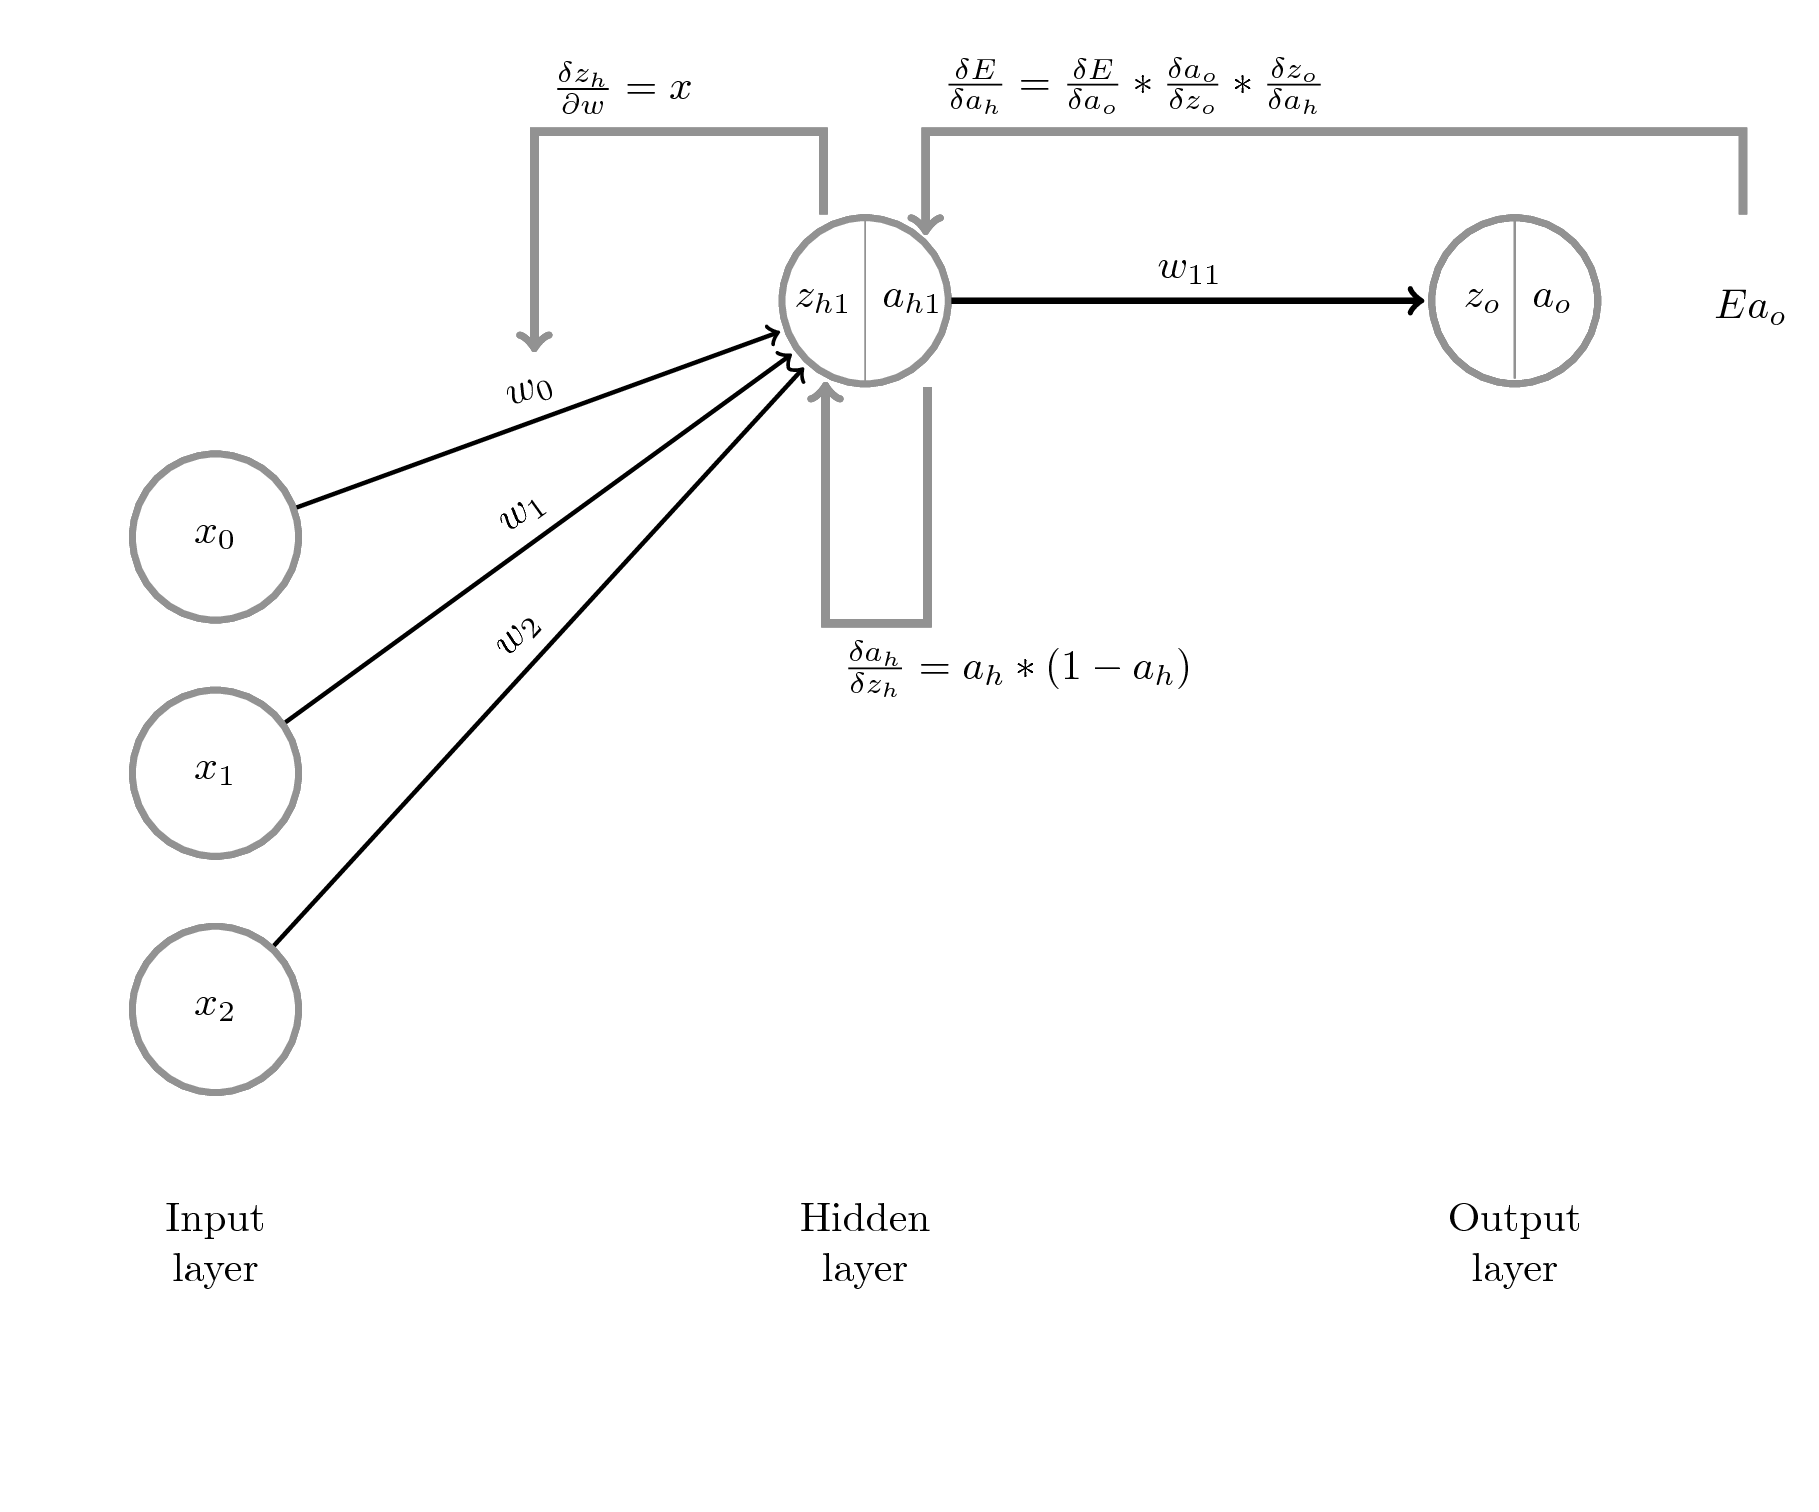 Latex neural network diagram smartdraw diagrams 7 steps to understanding deep learning latex pooptronica Image collections